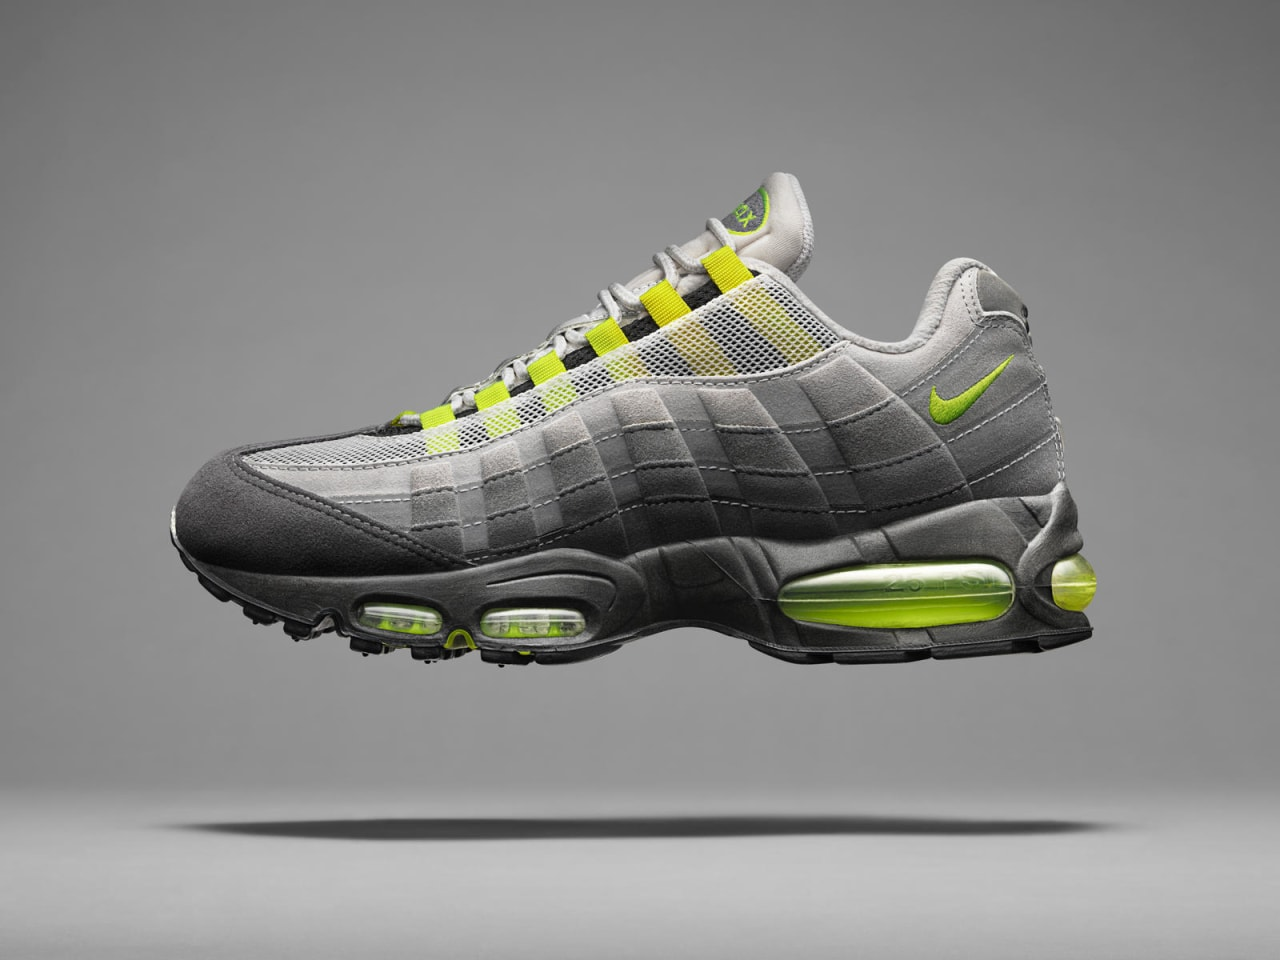 d5fc8584a0223a 20 Things You Didn t Know About the Nike Air Max 95